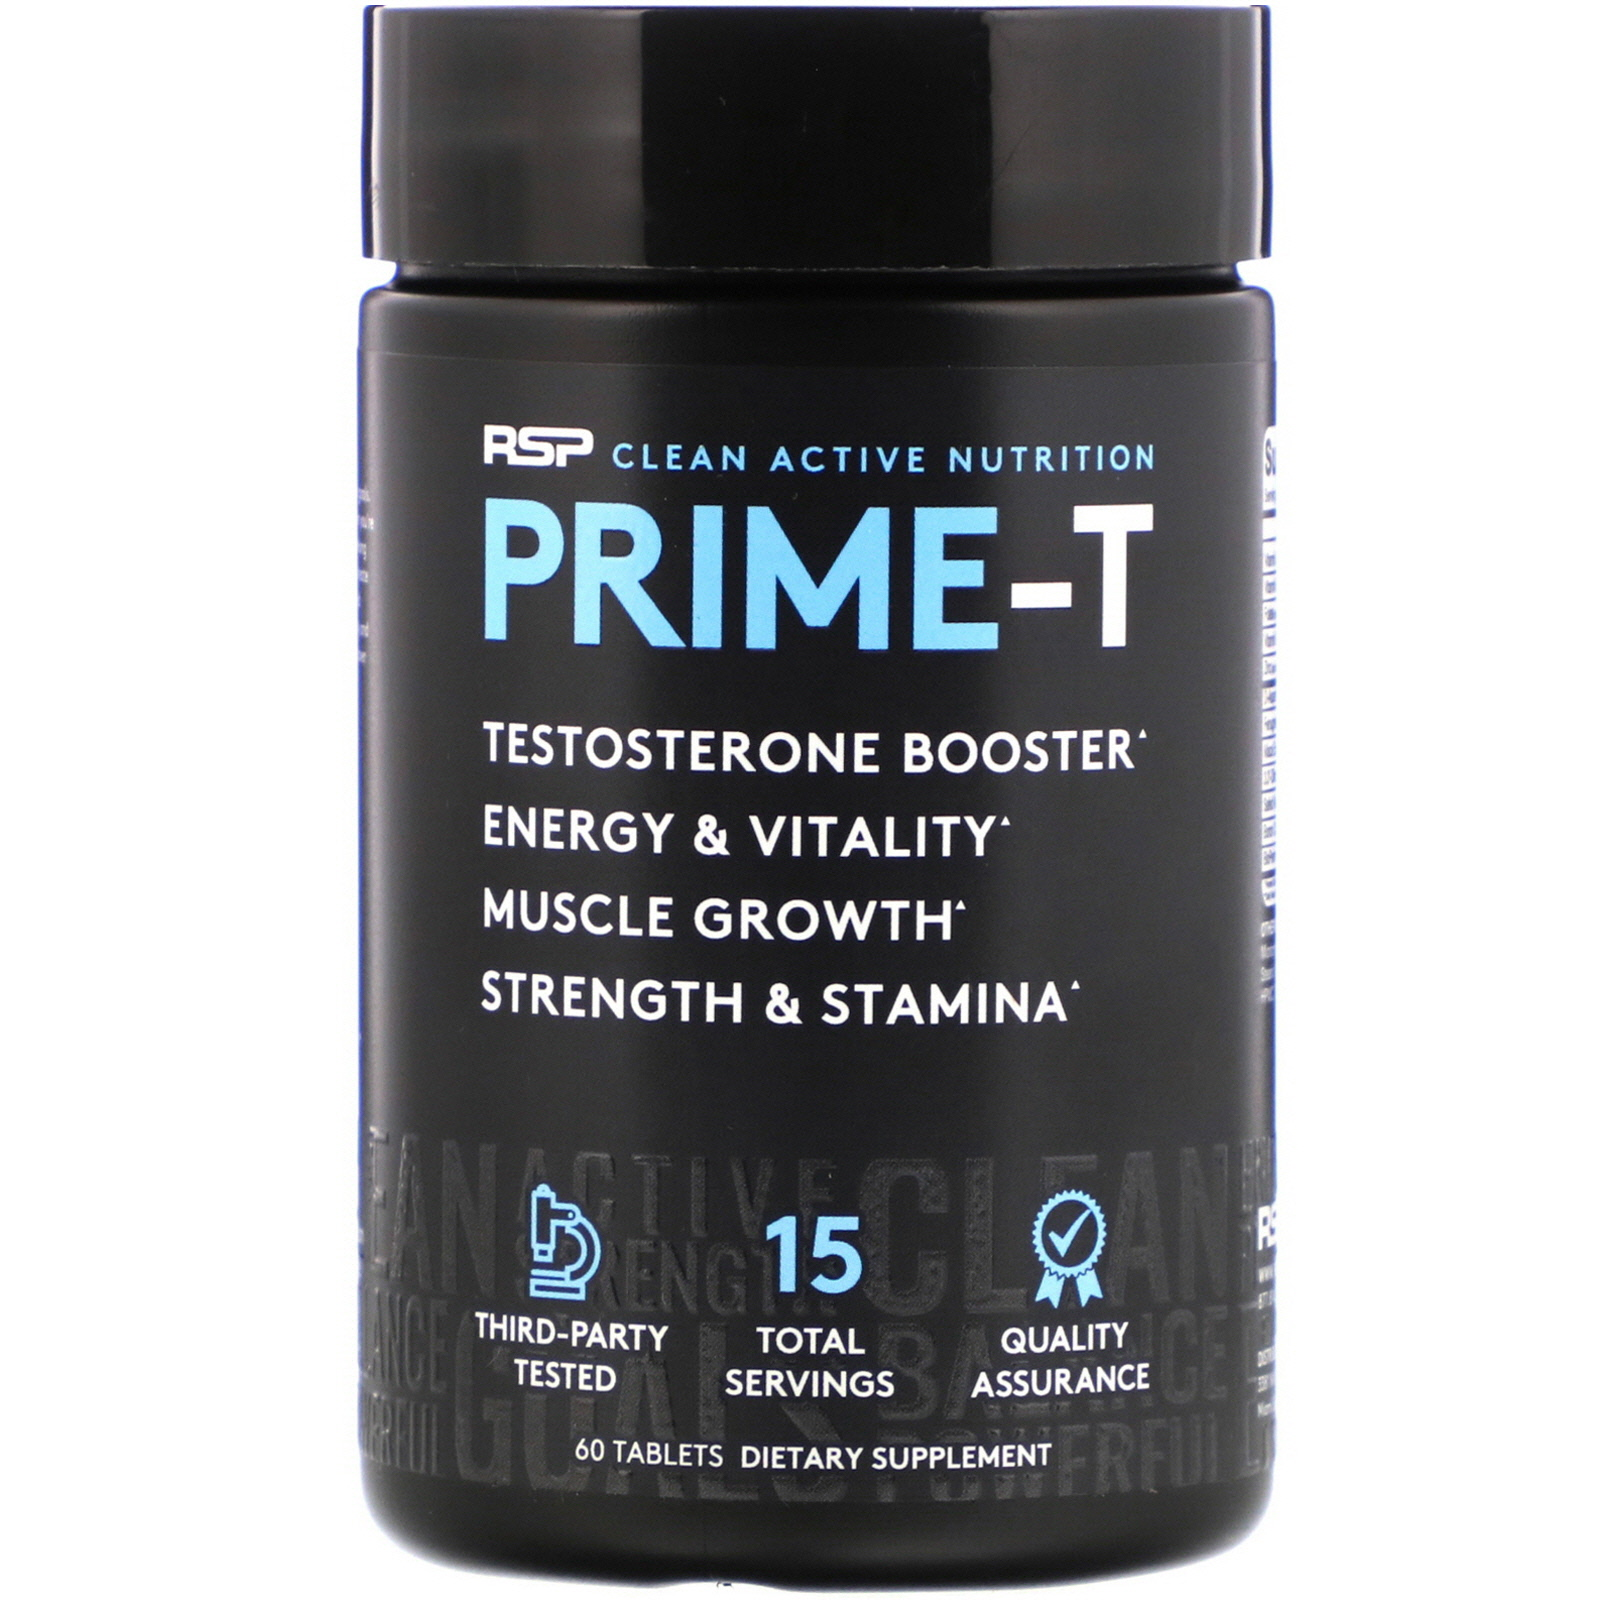 RSP Nutrition Prime-T Testosterone Booster 60 Tablets - iHerb